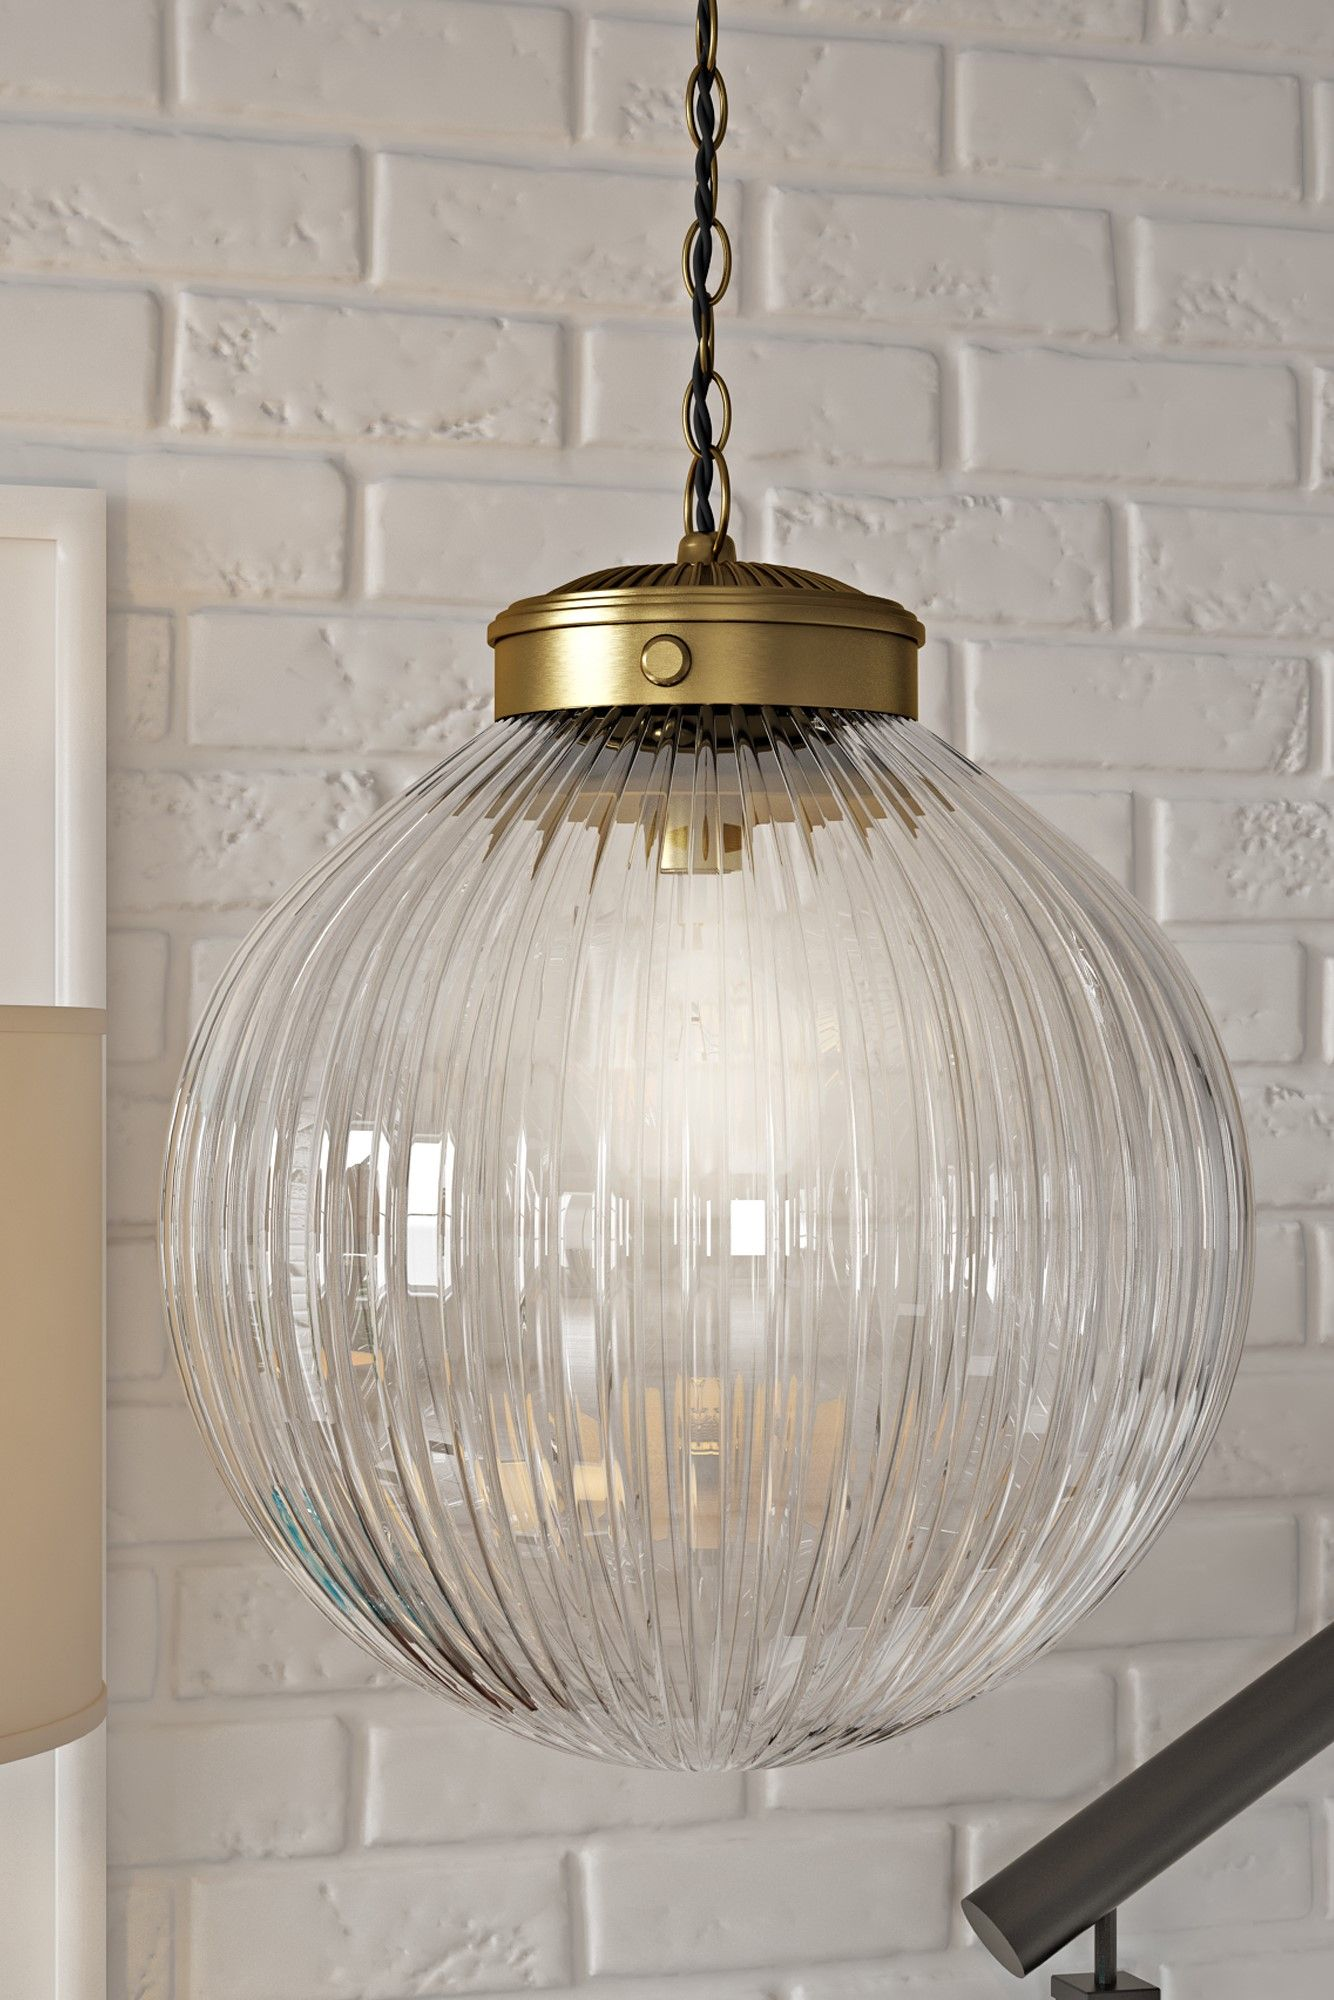 Brydon 1 Light Globe Pendant The Brydon Ceiling Pendant Features A Ribbed Round Glass Shade Hangin Pendant Light Kit Glass Pendant Light Plug In Pendant Light